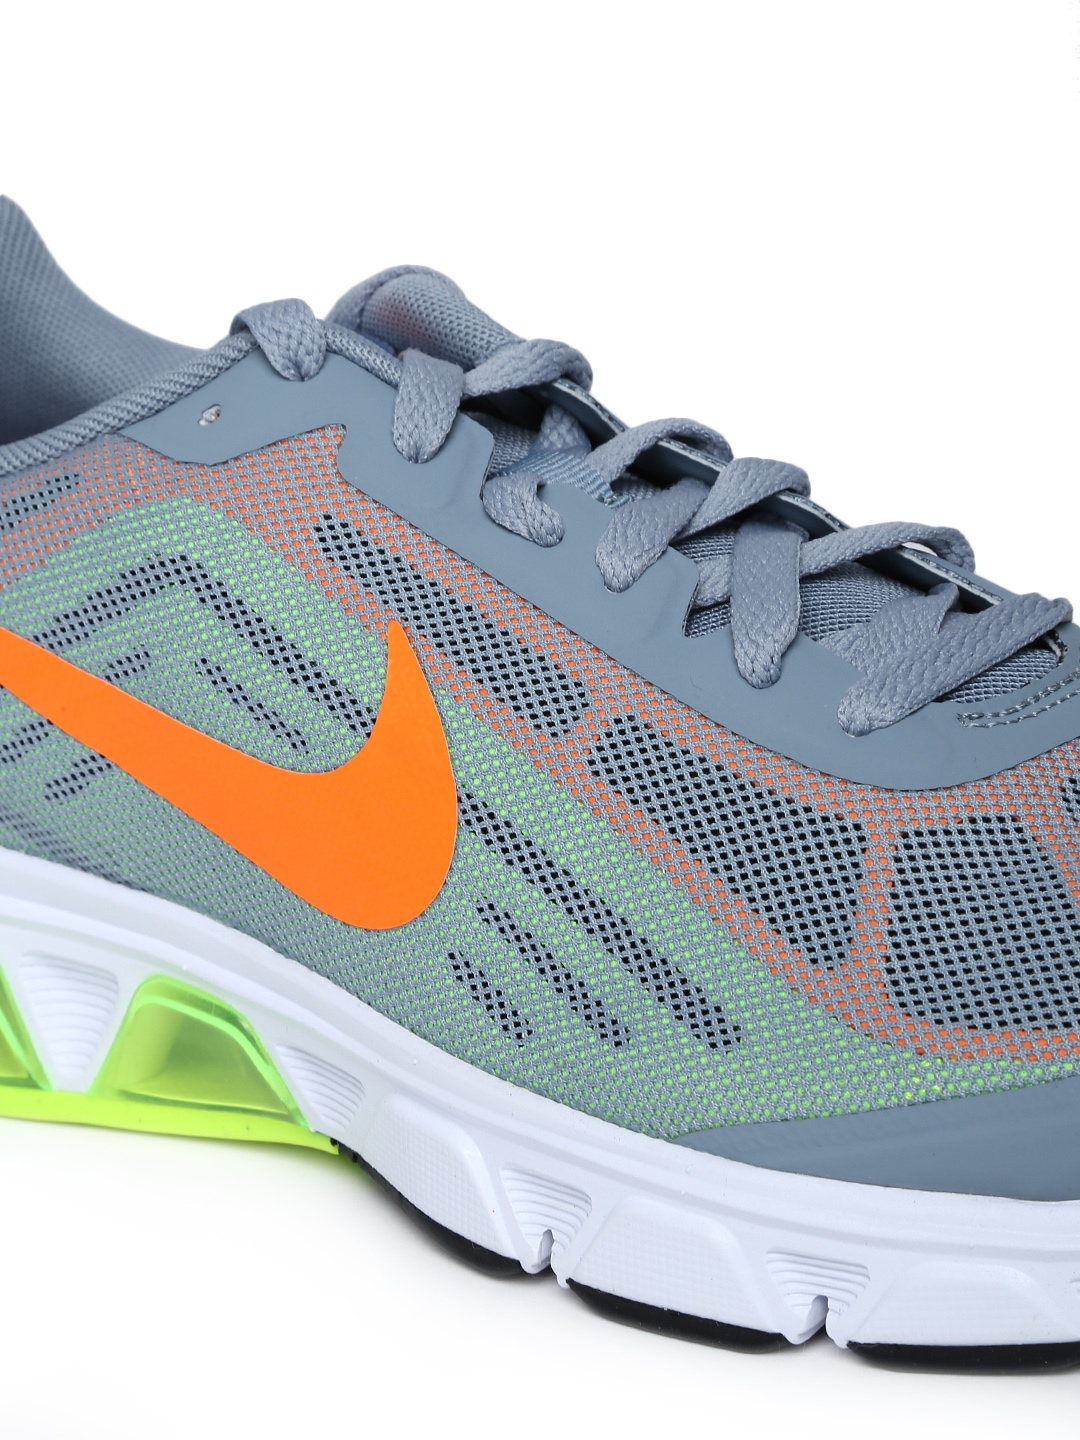 myntra nike grey air max boldspeed running shoes